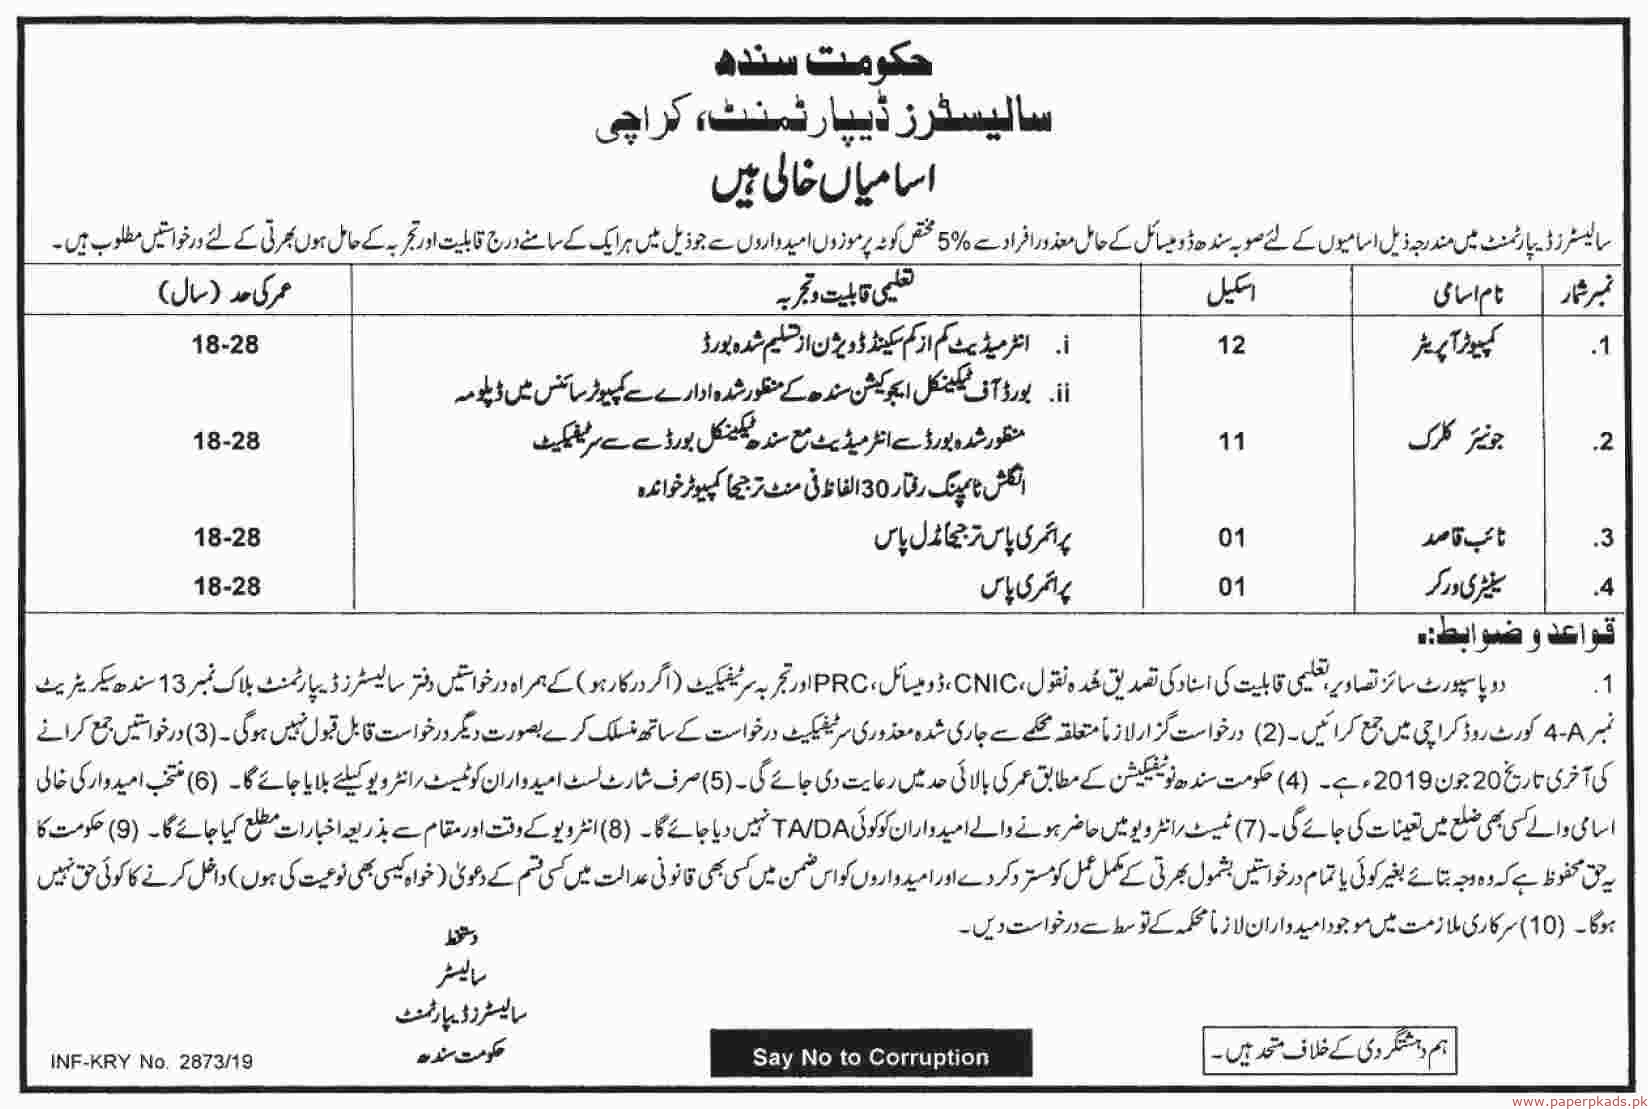 Government of Sindh - Solicitor Department Jobs 2019 Latest